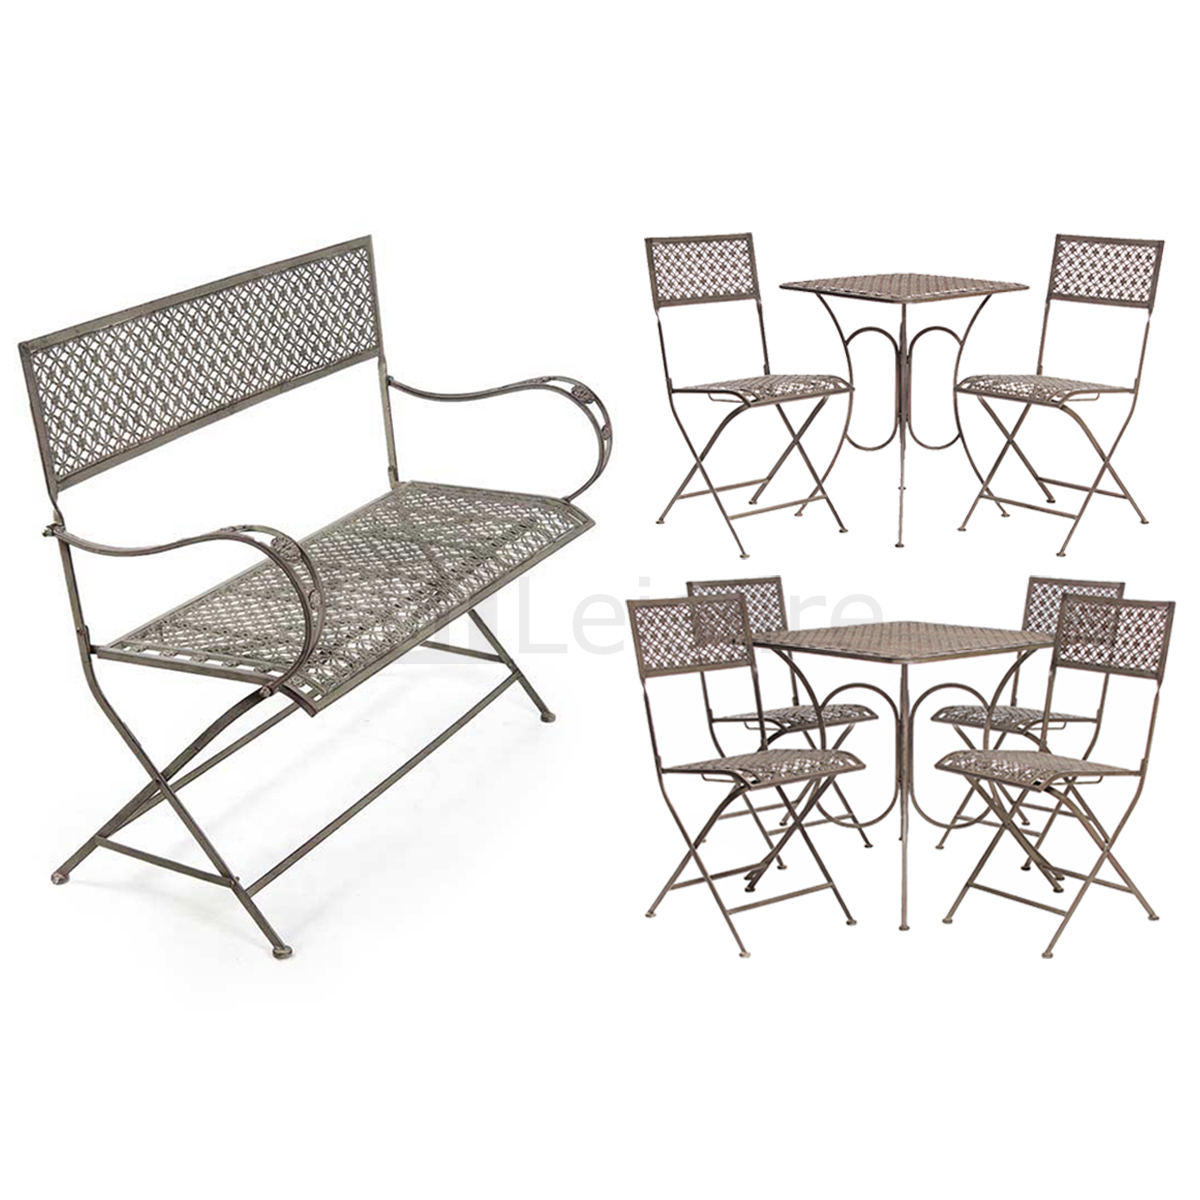 Vintage Steel Bistro Furniture Set Garden Table And Chairs Metal Patio Bench Ebay